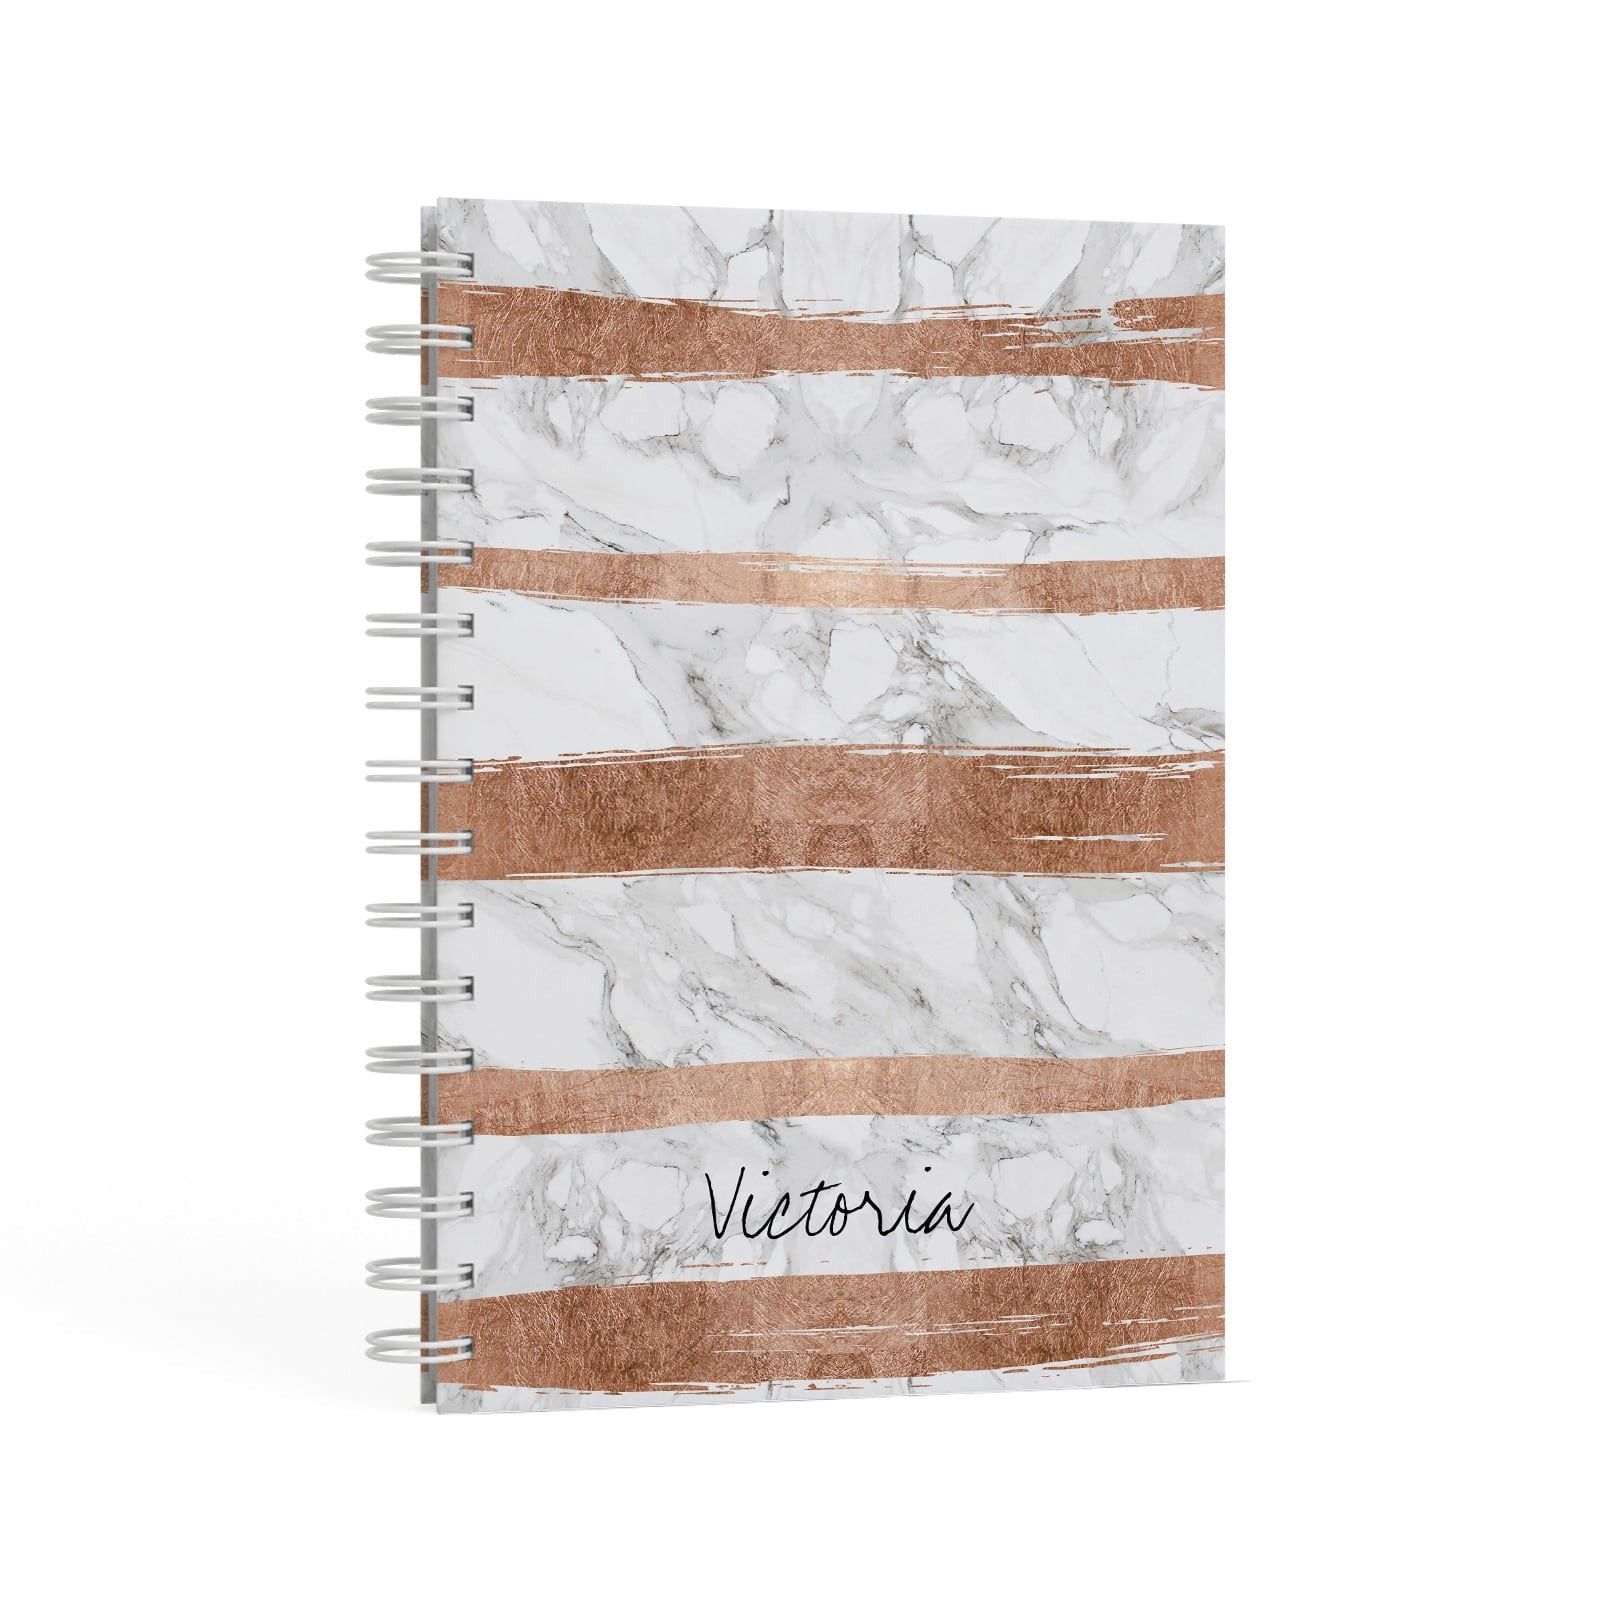 Personalised Rose Gold Brush Marble Initial A5 Hardcover Notebook Second Side View